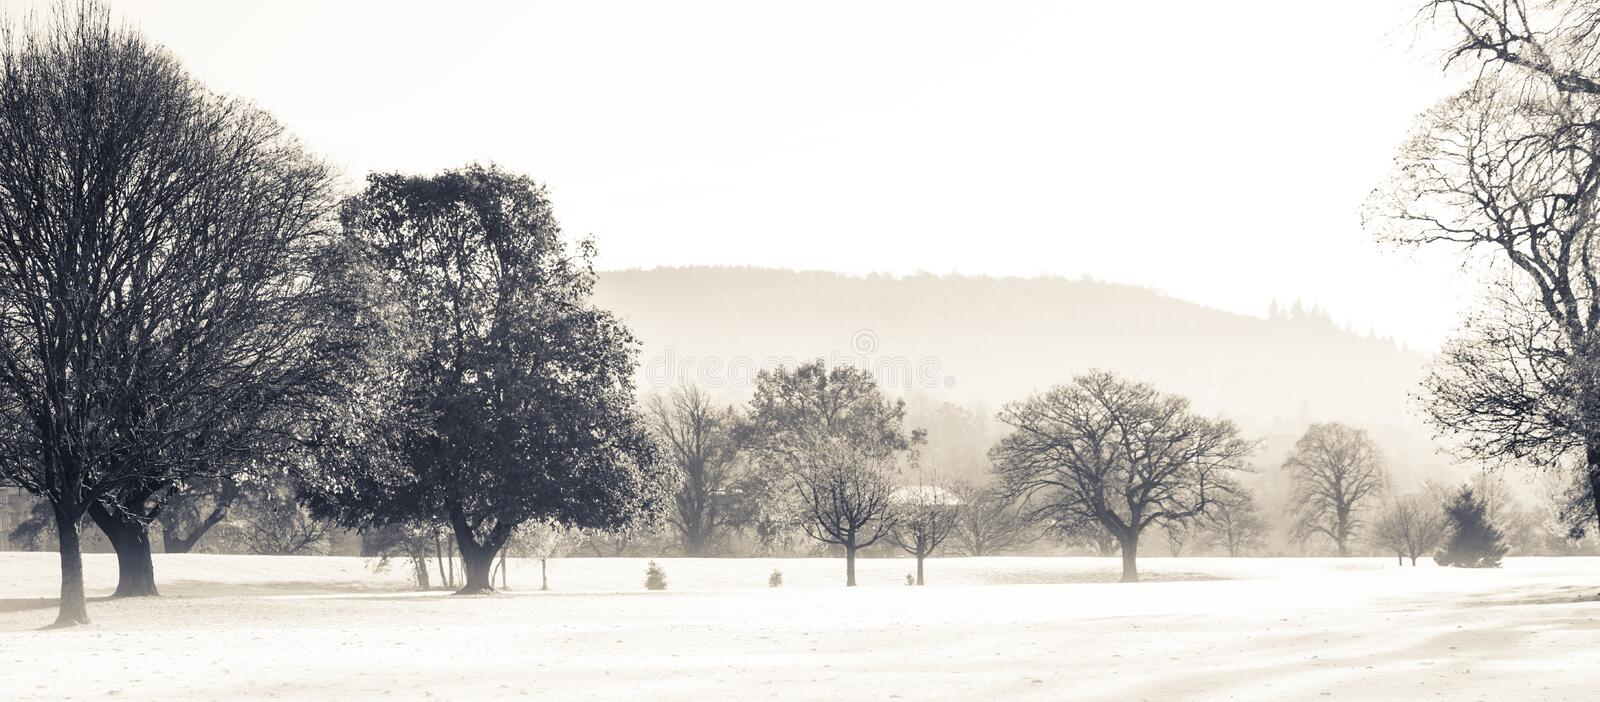 Autumn morning landscape with fog, trees, frost and sunlight. Foggy frosty autumn morning. Copy space. Monochrome royalty free stock image